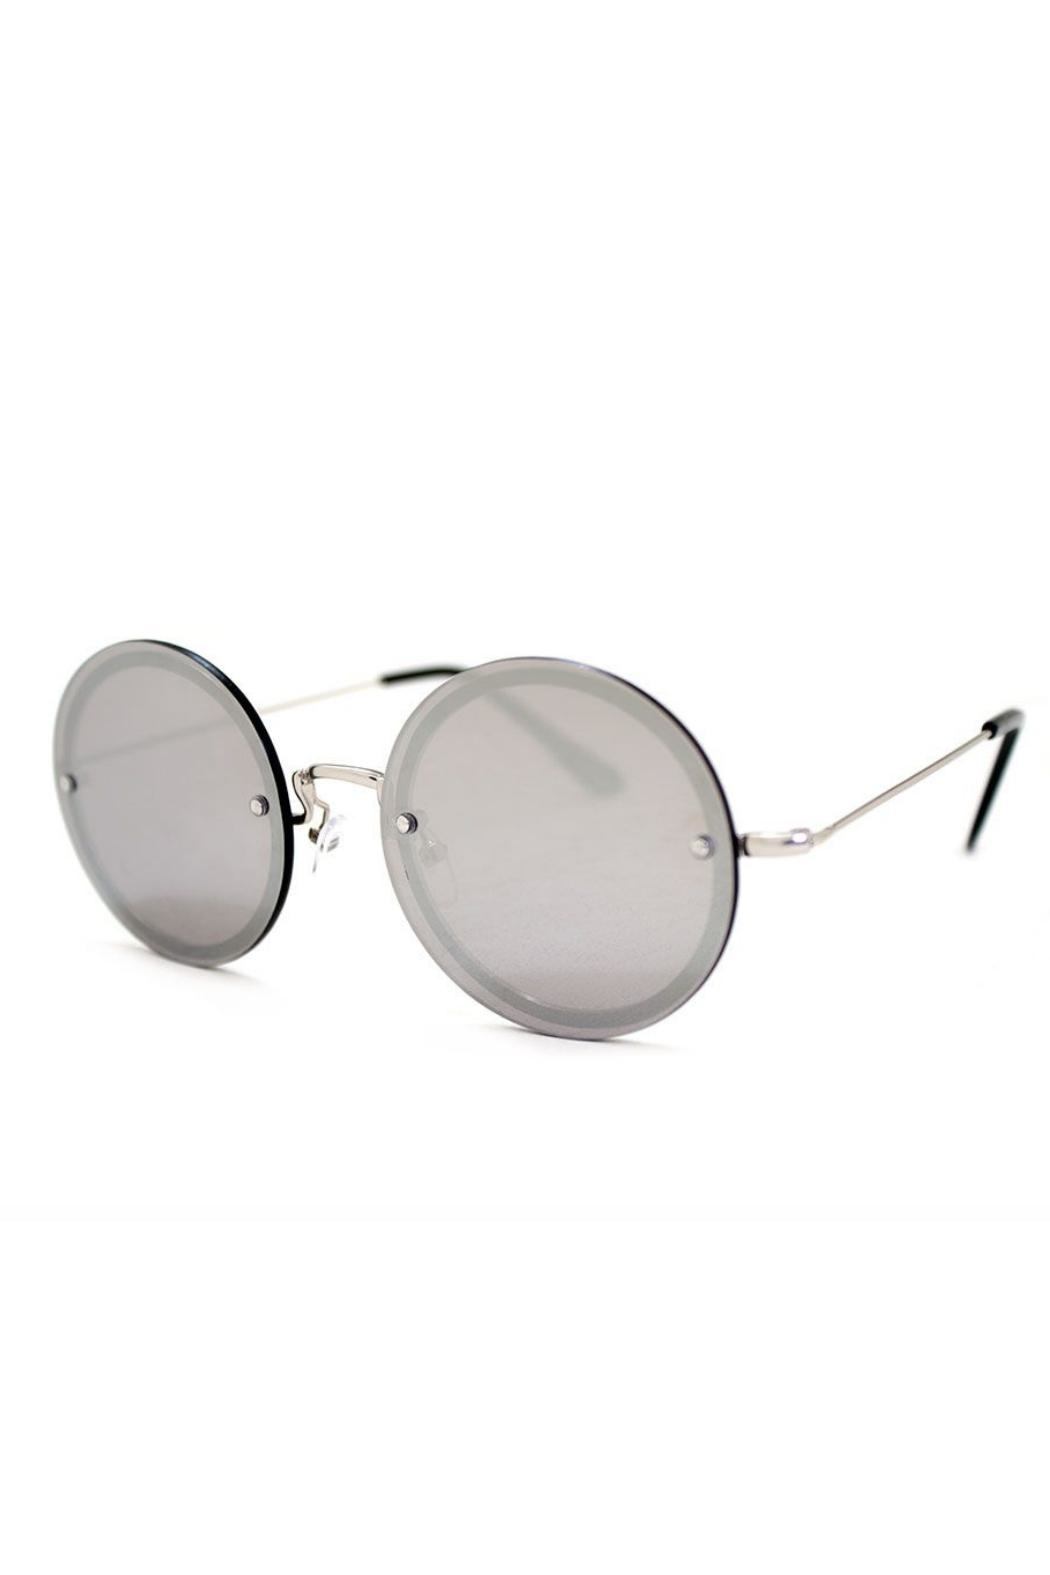 AJ Morgan Rimless Eyeballs Sunglasses - Main Image